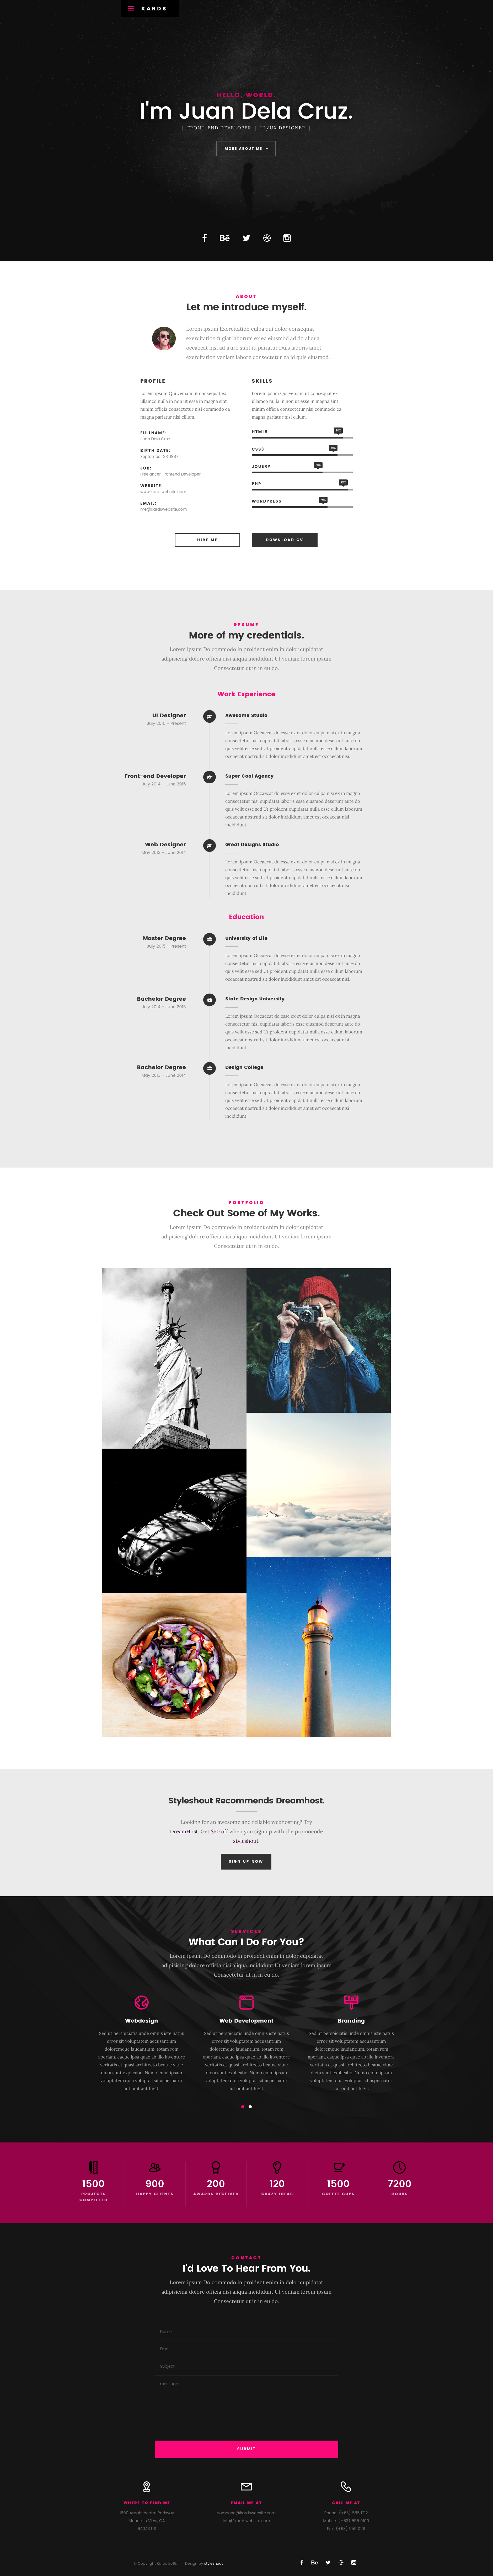 Kards is a modern and clean free responsive HTML5 portfolio website template. It has many features like timeline, stats section, skillbars, working ajax form, masonry portfolio section to showcase your works and many more. Kards template is retina ready and also looks great on all devices from mobile to desktop.